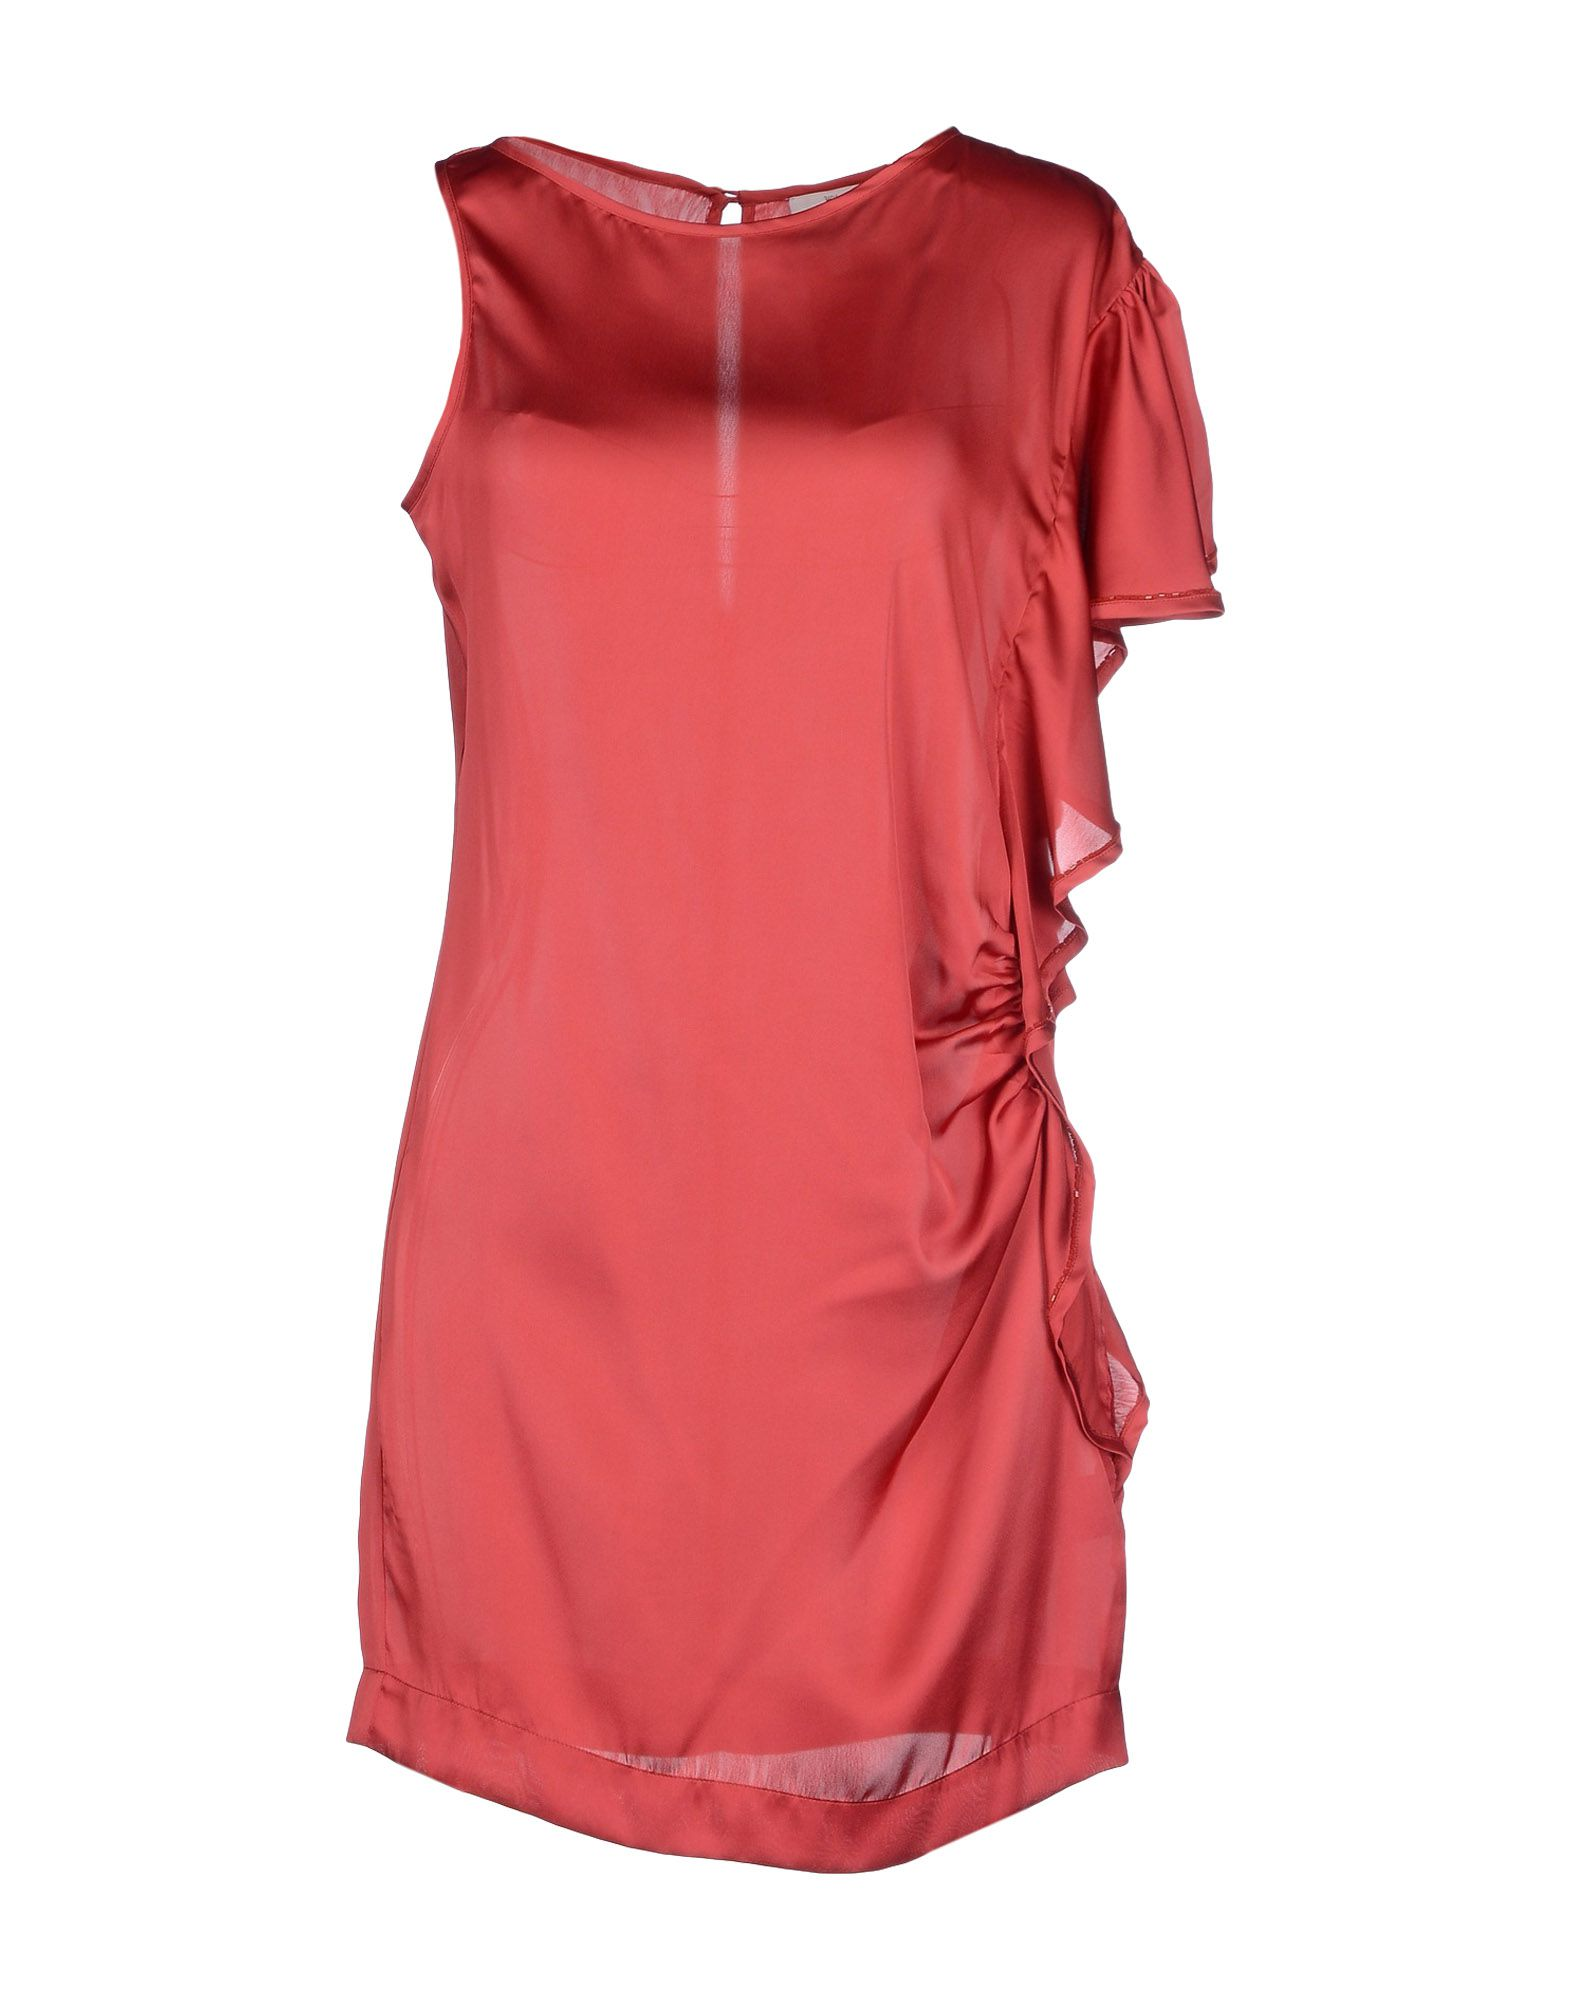 de489be880f5 Buy only 4 stylish girls by patrizia pepe clothing for women - Best ...